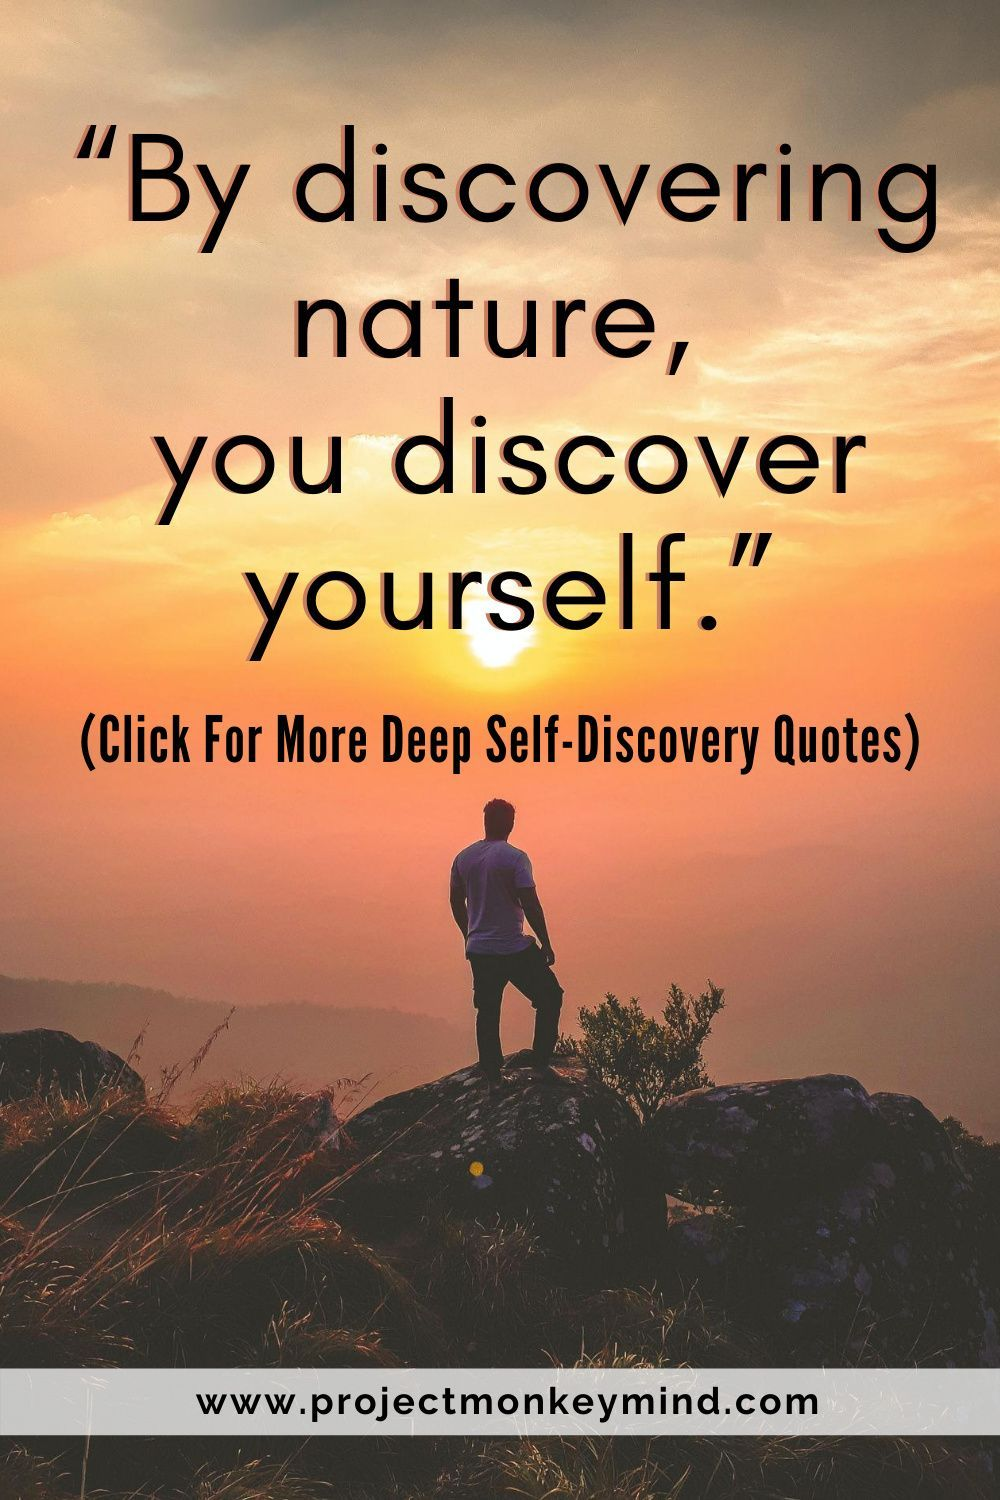 61 Self Discovery Quotes To Find Yourself Today Self Discovery Quotes Yoga Meditation Quotes Nature Quotes